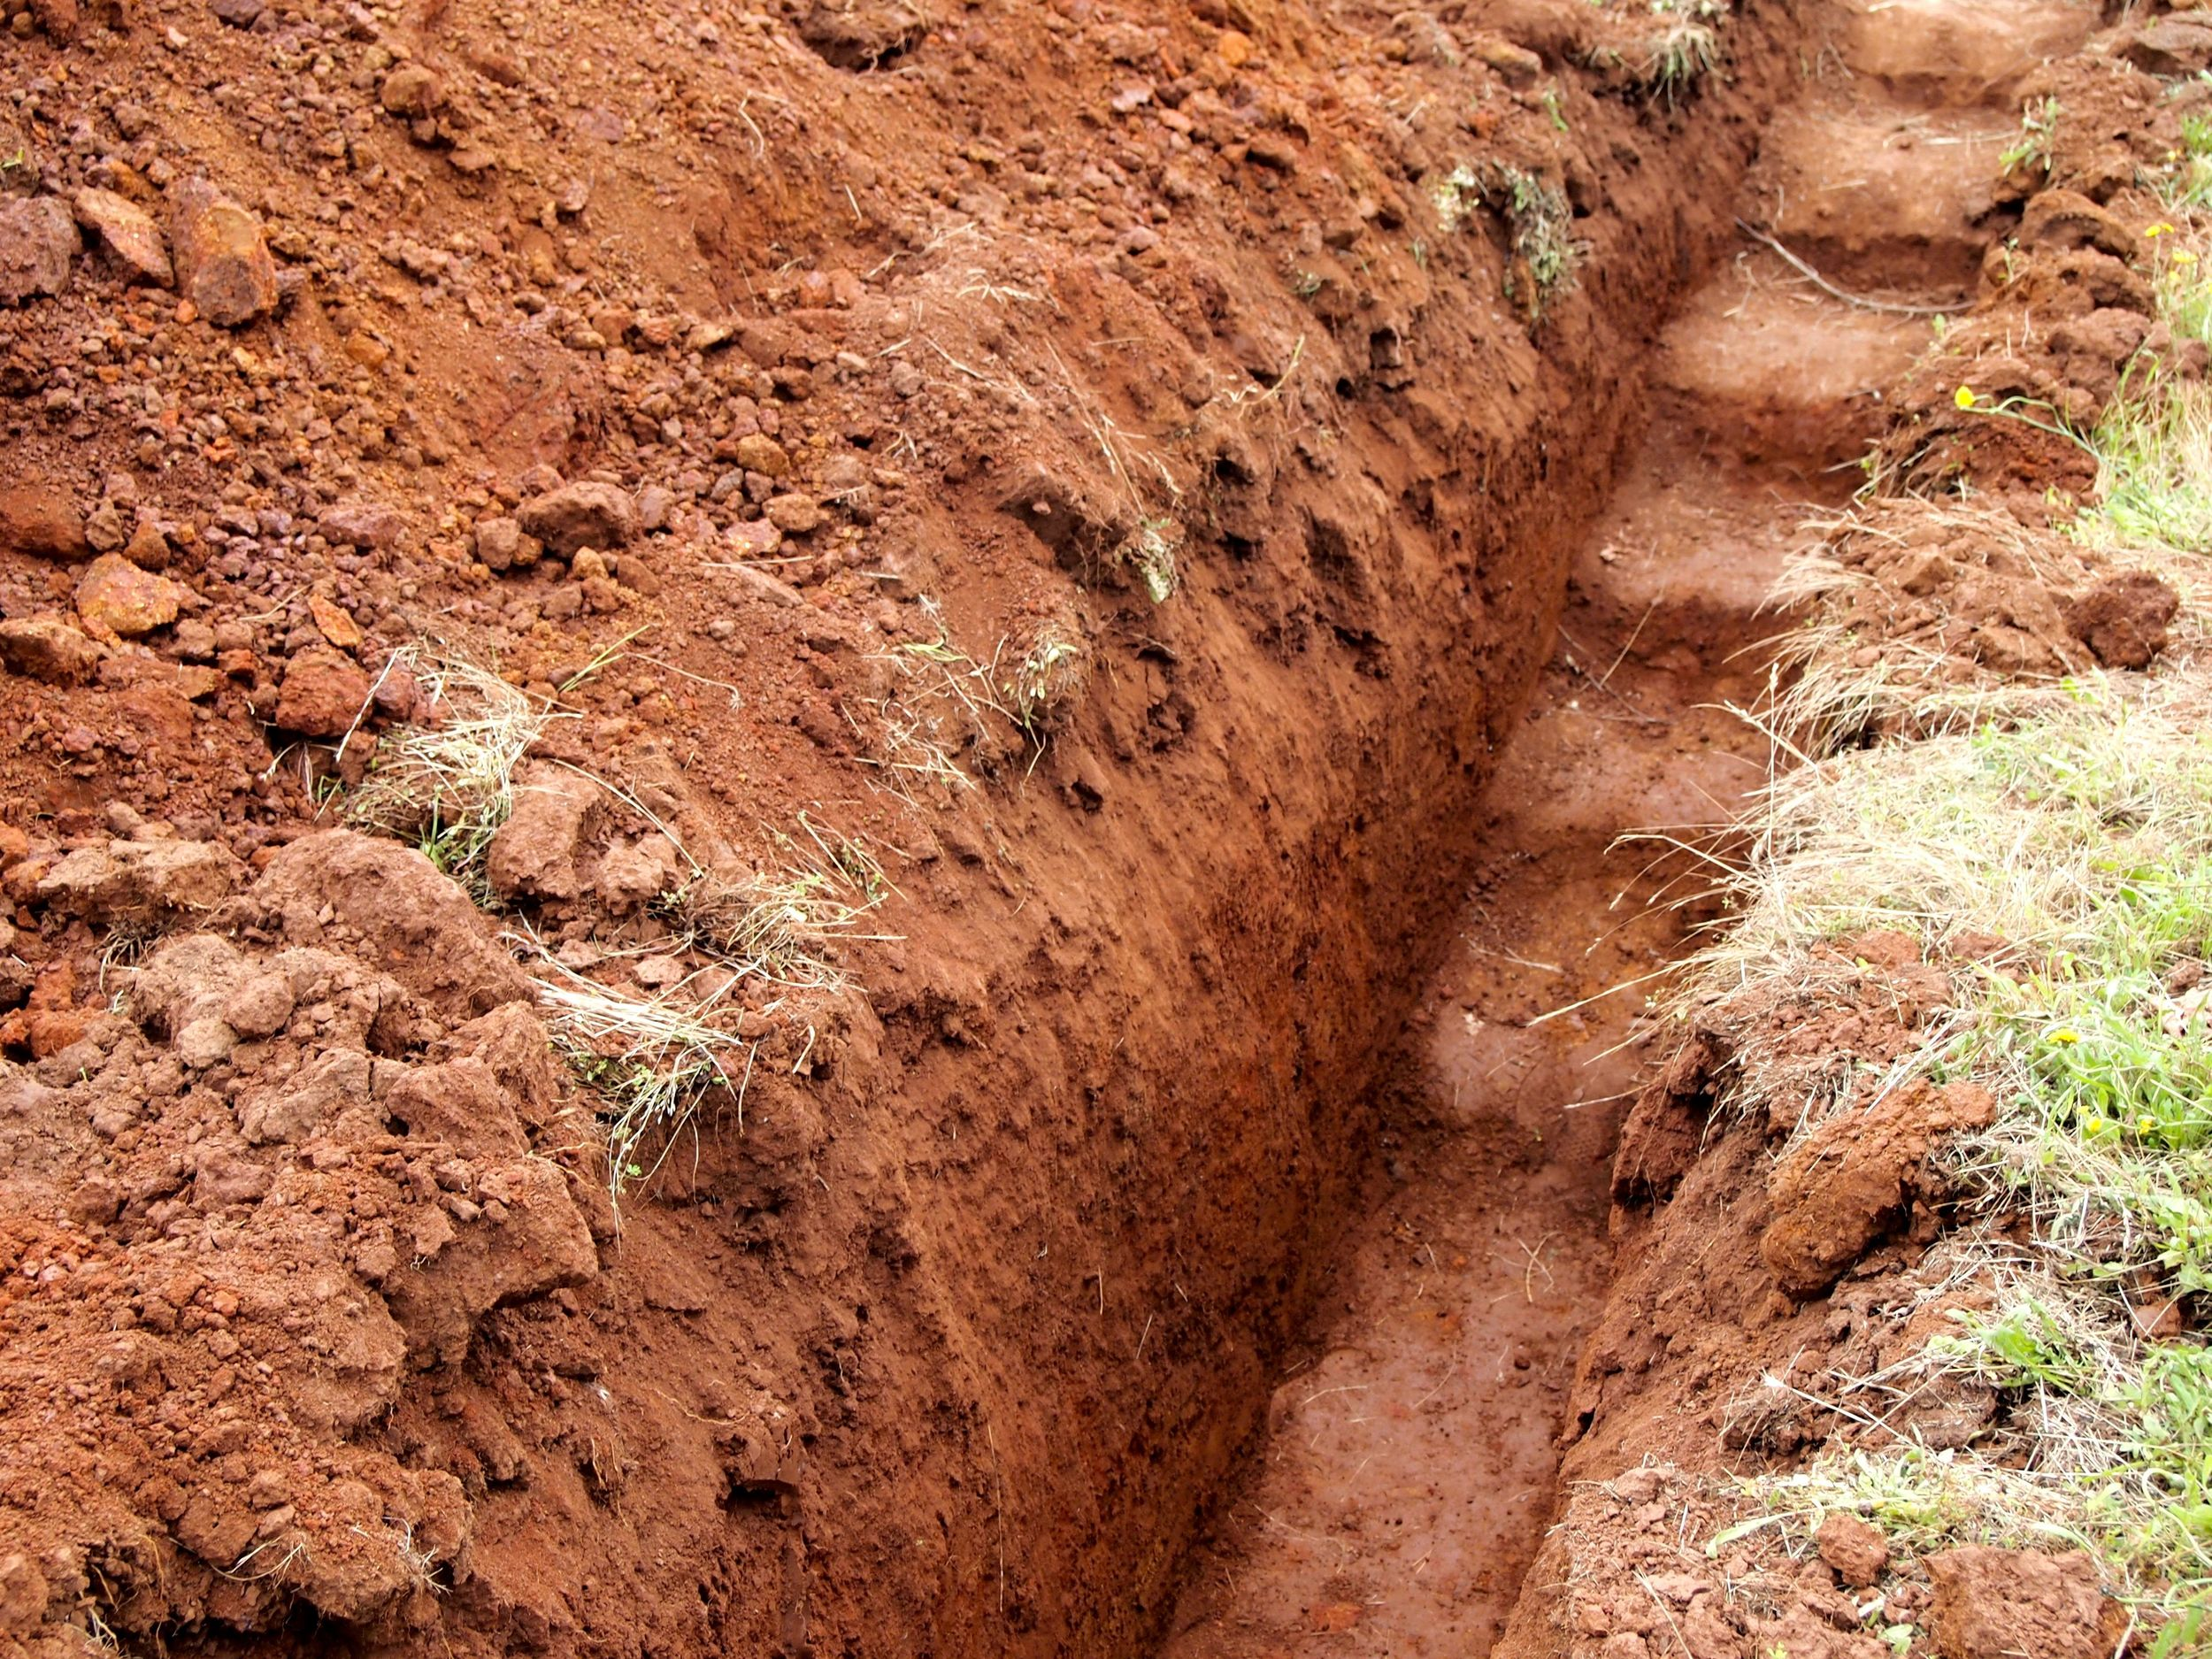 A good example of the volcanic Jory soil prevalent in Dundee Hills.